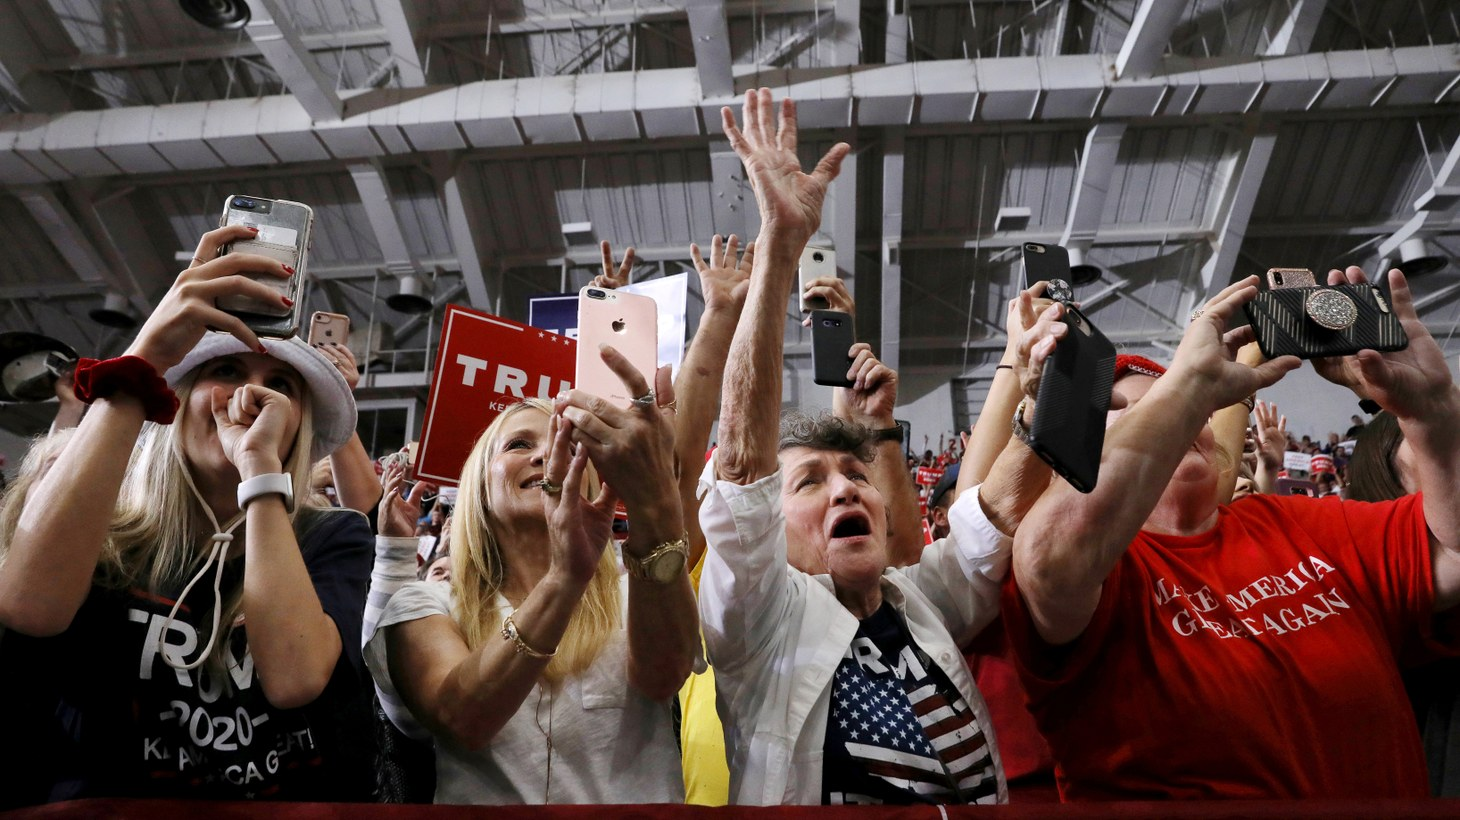 Supporters attend a rally by U.S. President Donald Trump in Monroe, Louisiana, U.S., November 6, 2019.